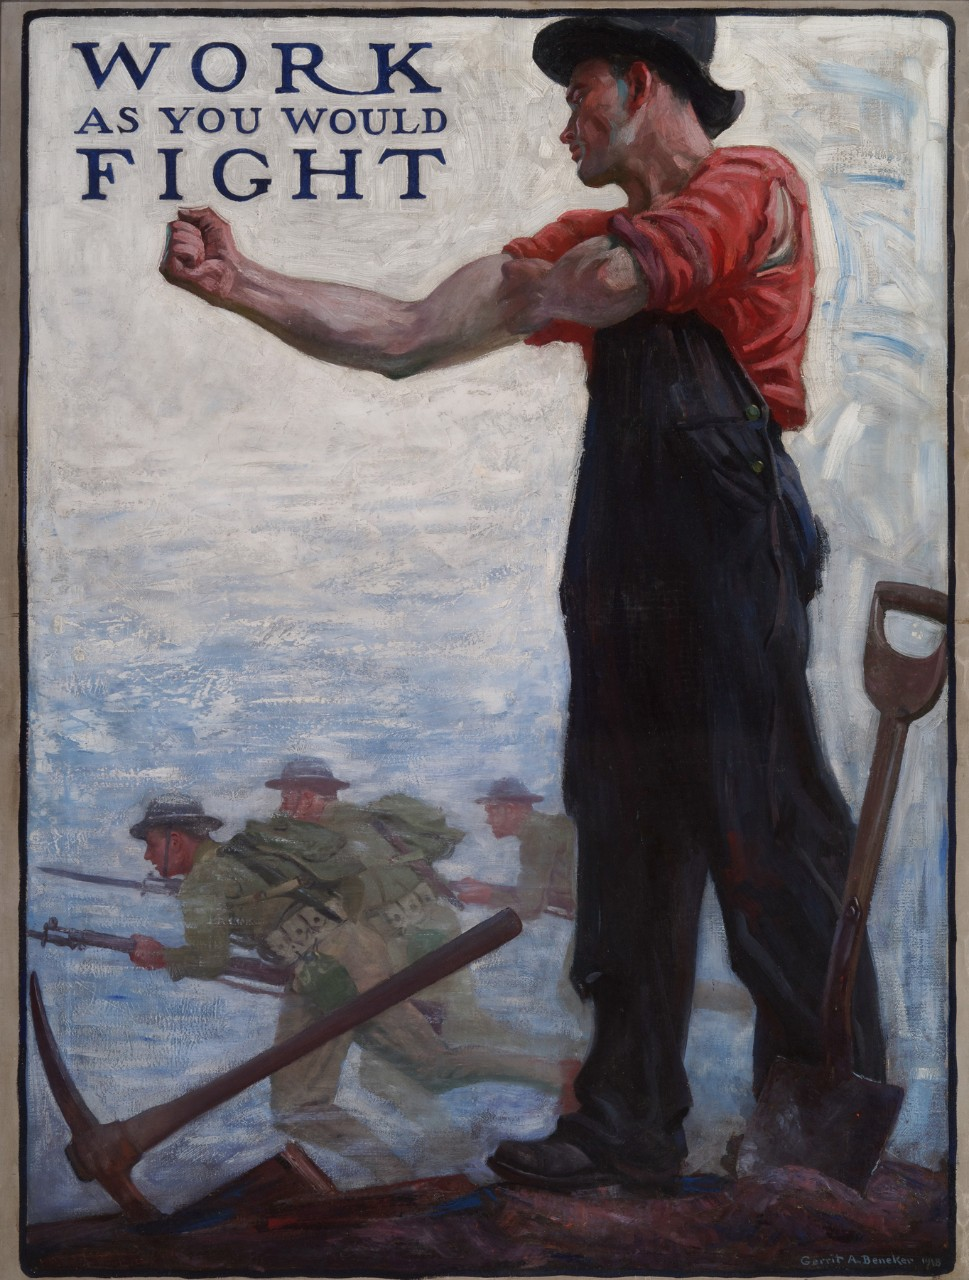 "A workman flexes his arm while in the background soldiers charge forward. In the upper left it says ""Work as You Would Fight"""